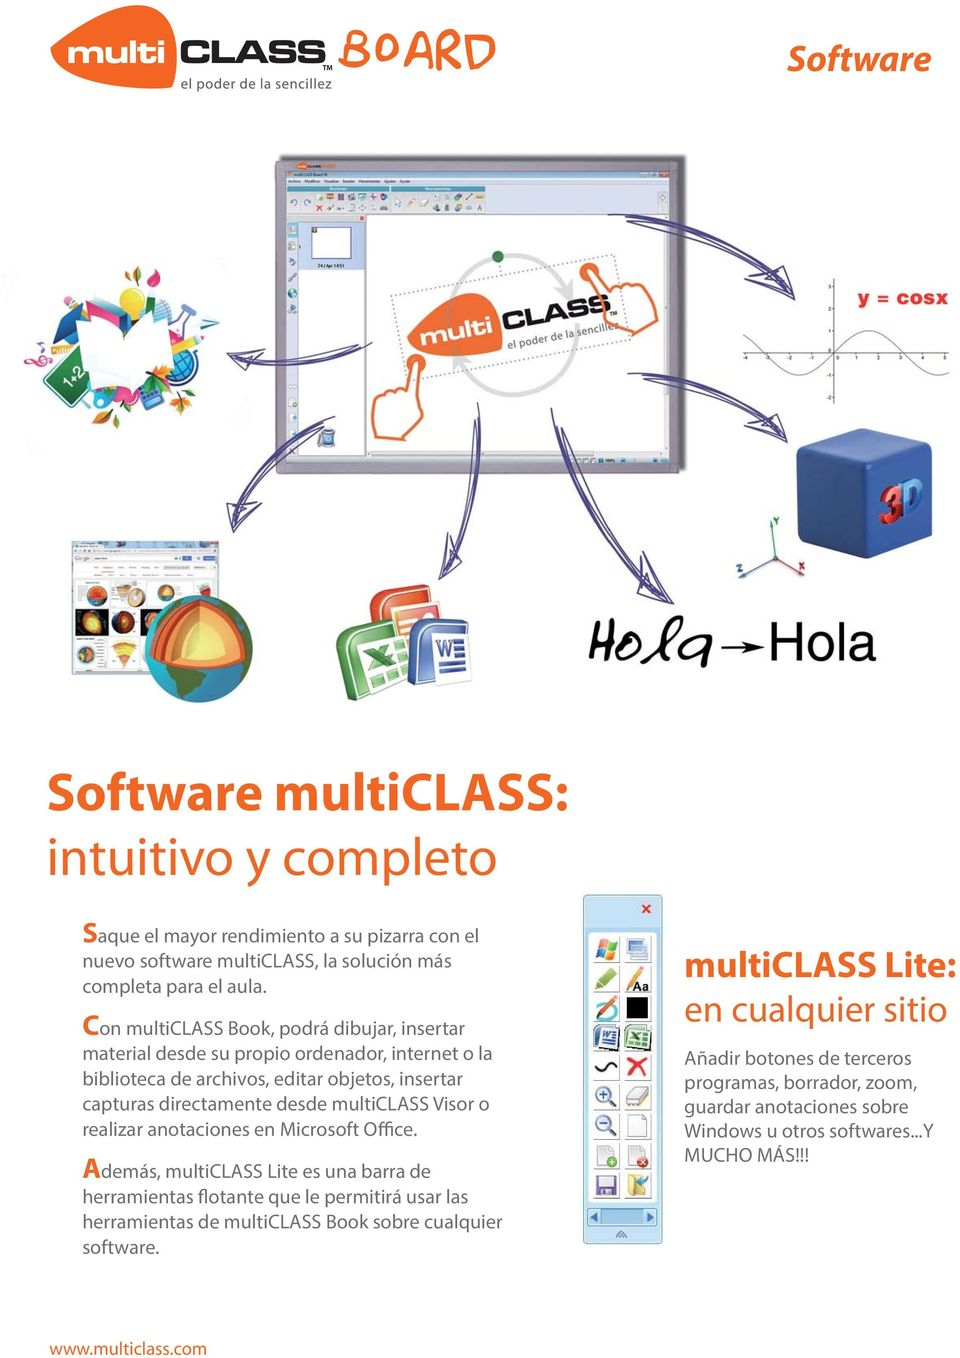 multiclass Visor o realizar anotaciones en Microsoft Office.